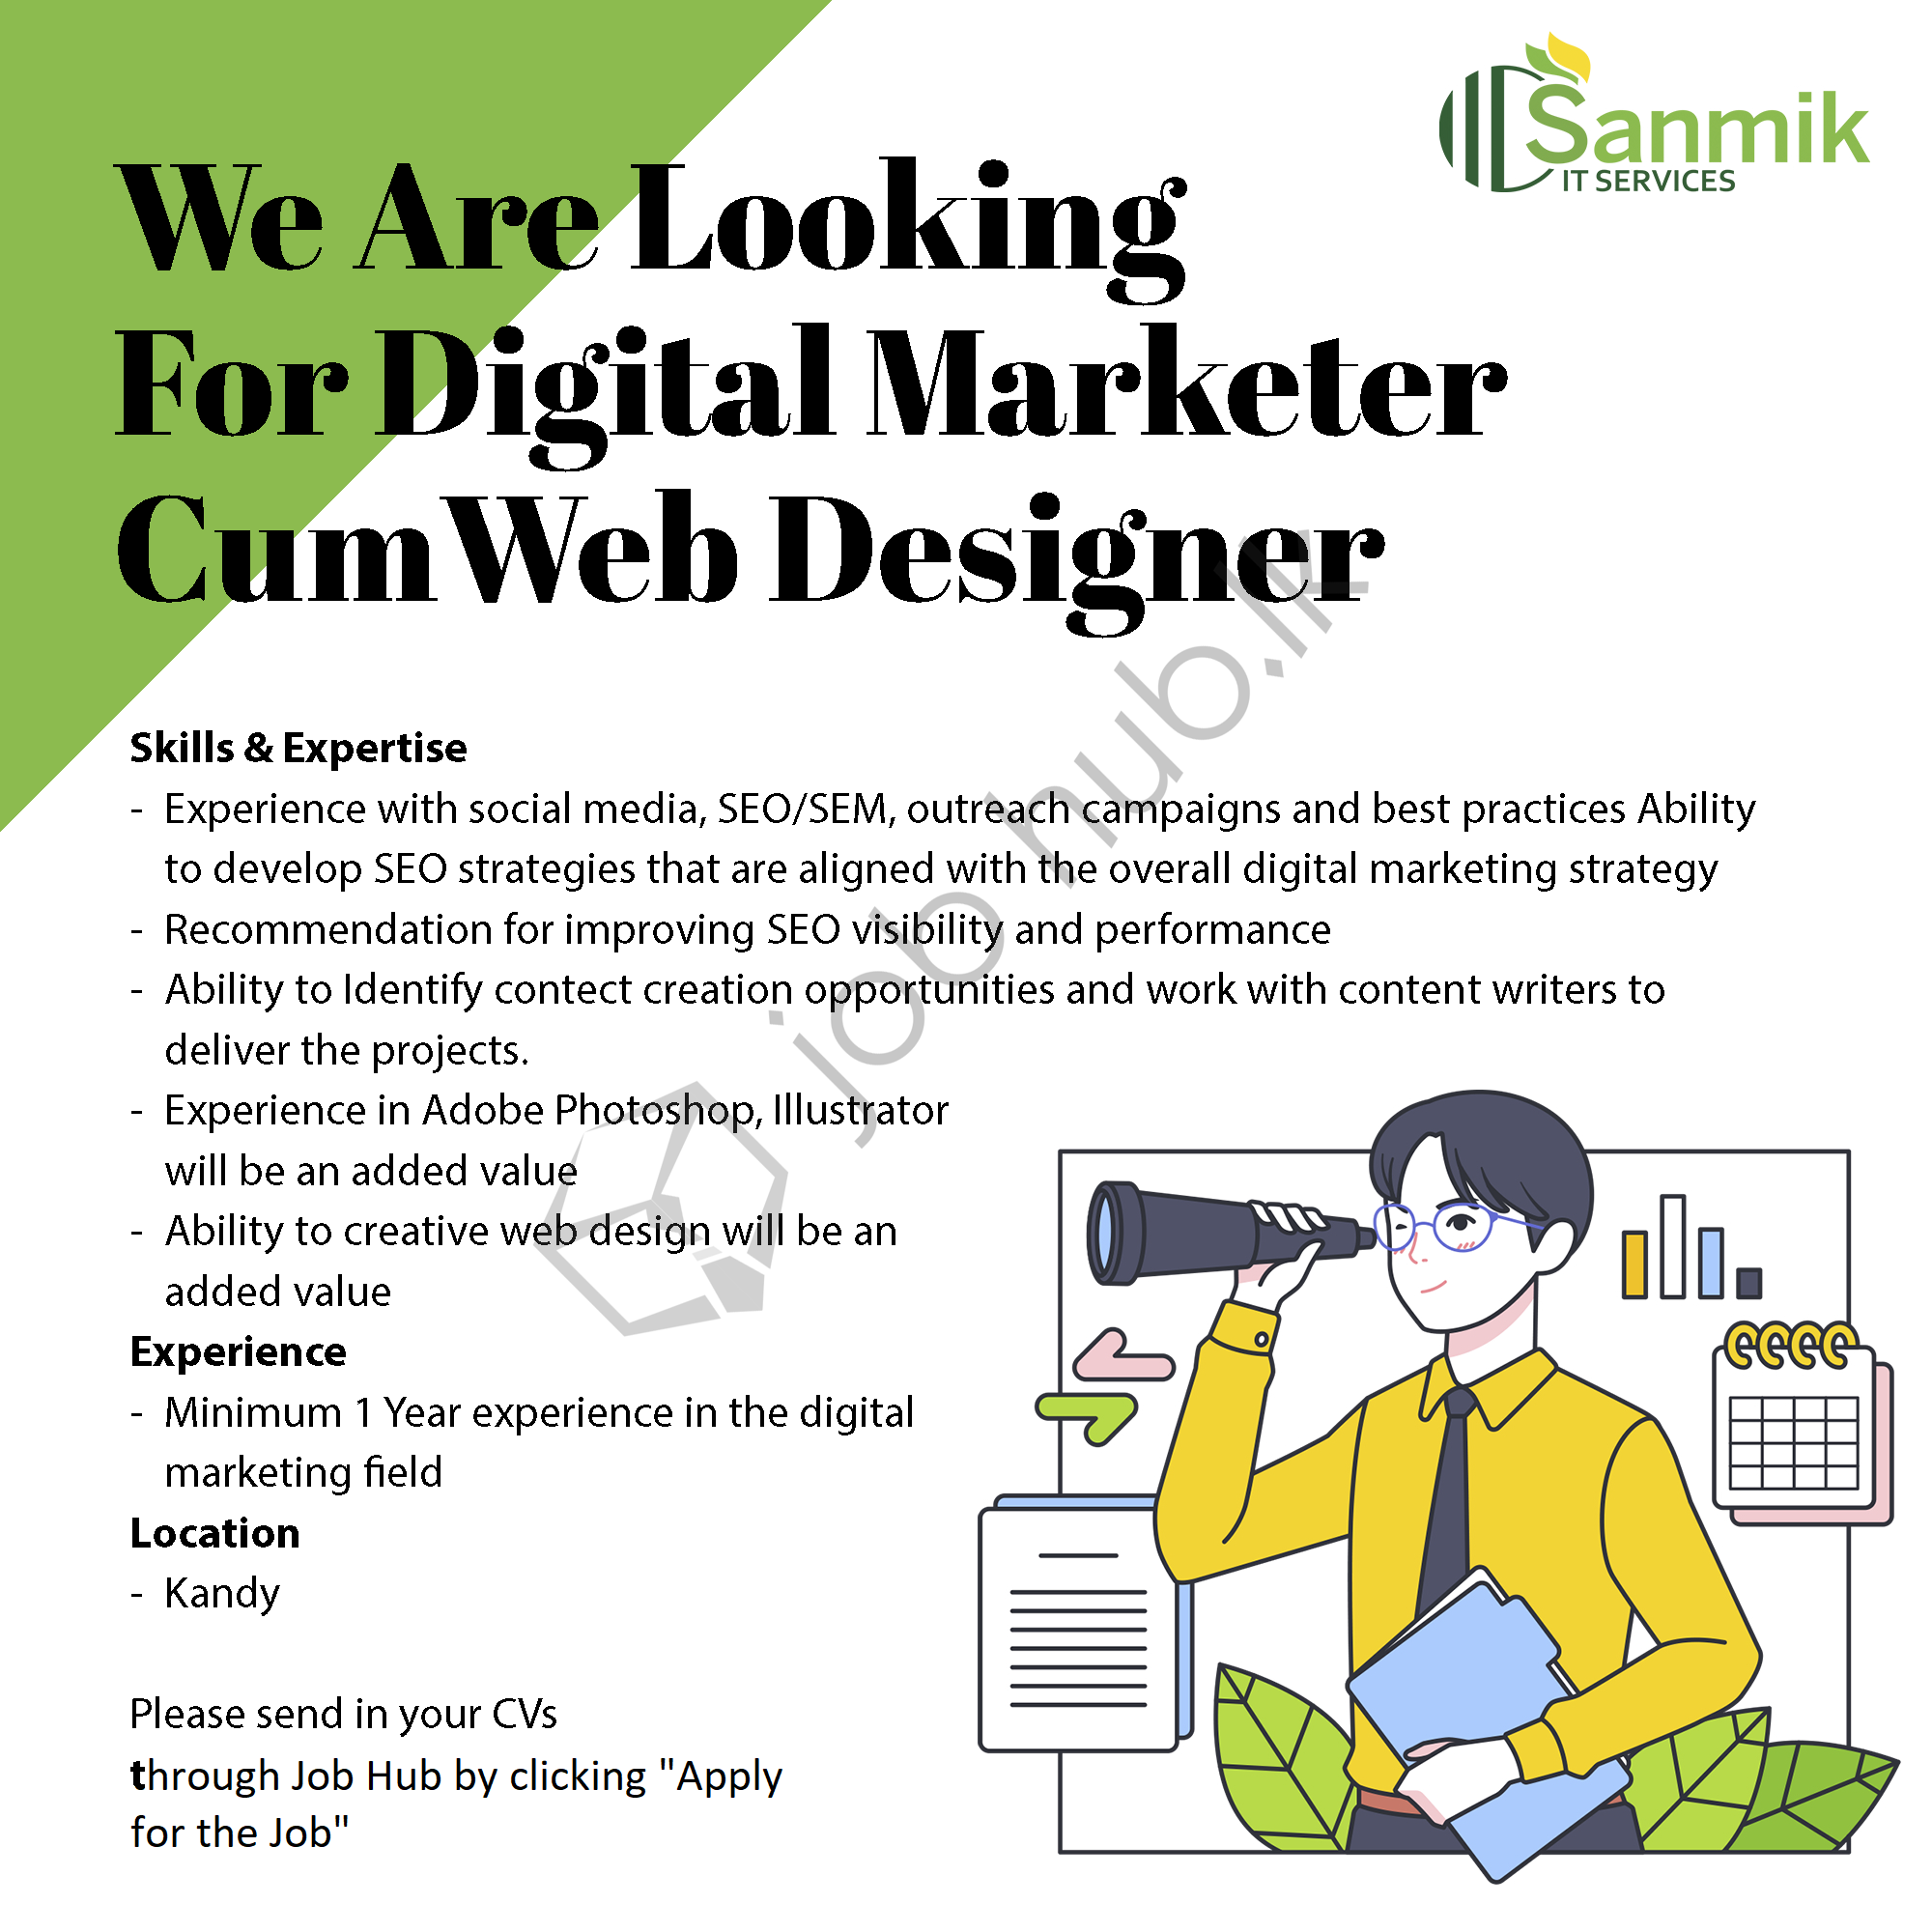 Job Vacancy for Digital Marketer and Web Designer in Kandy